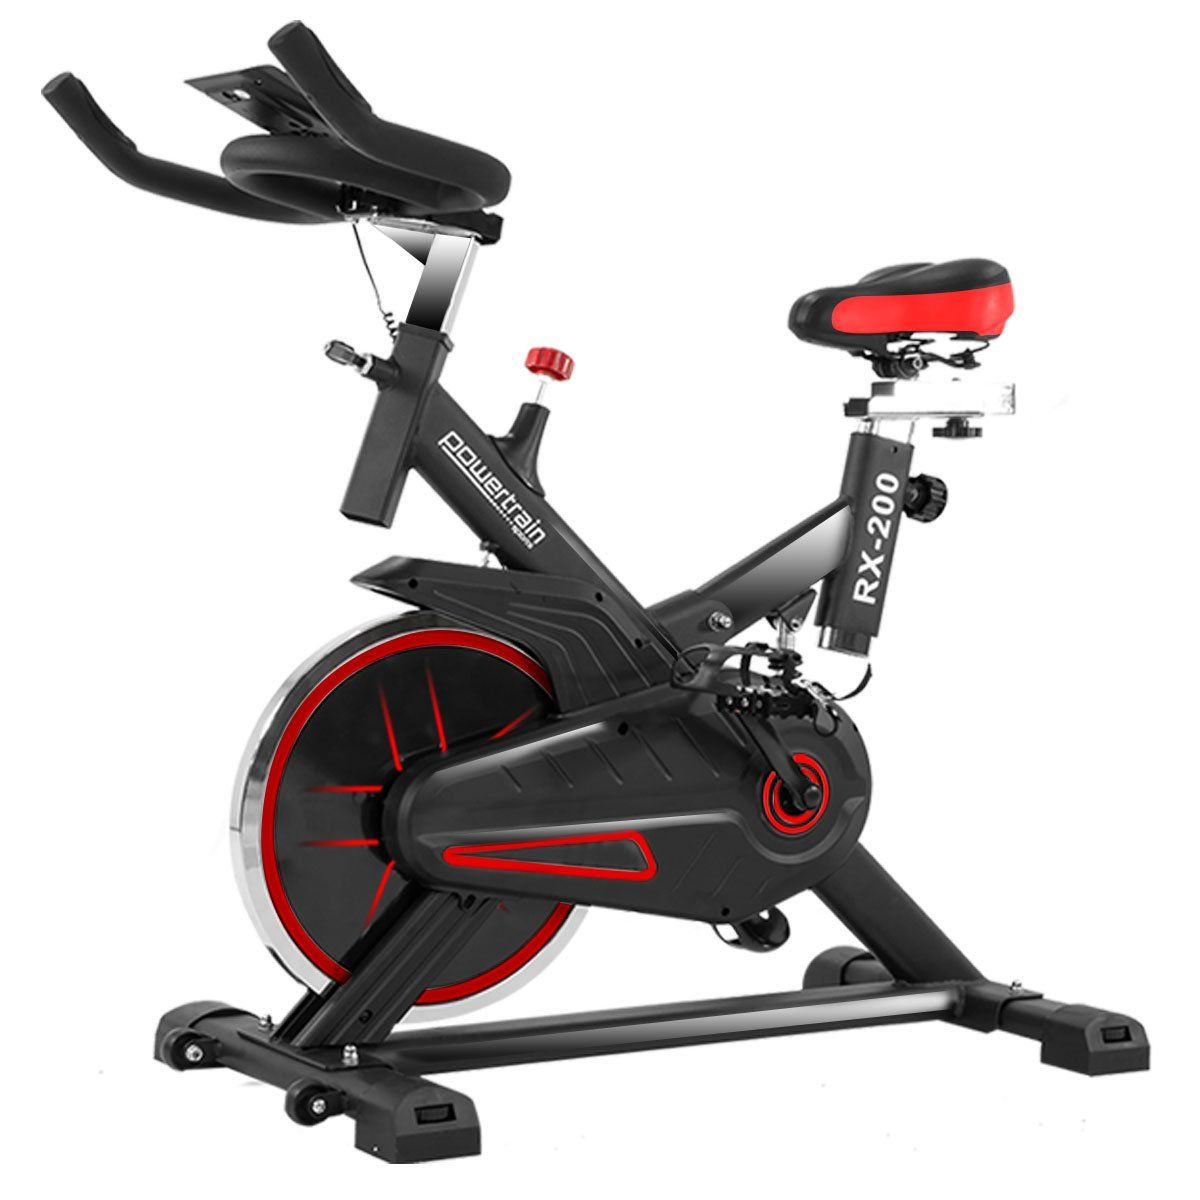 Powertrain Rx 200 Exercise Spin Bike Cardio Cycle Red Spin